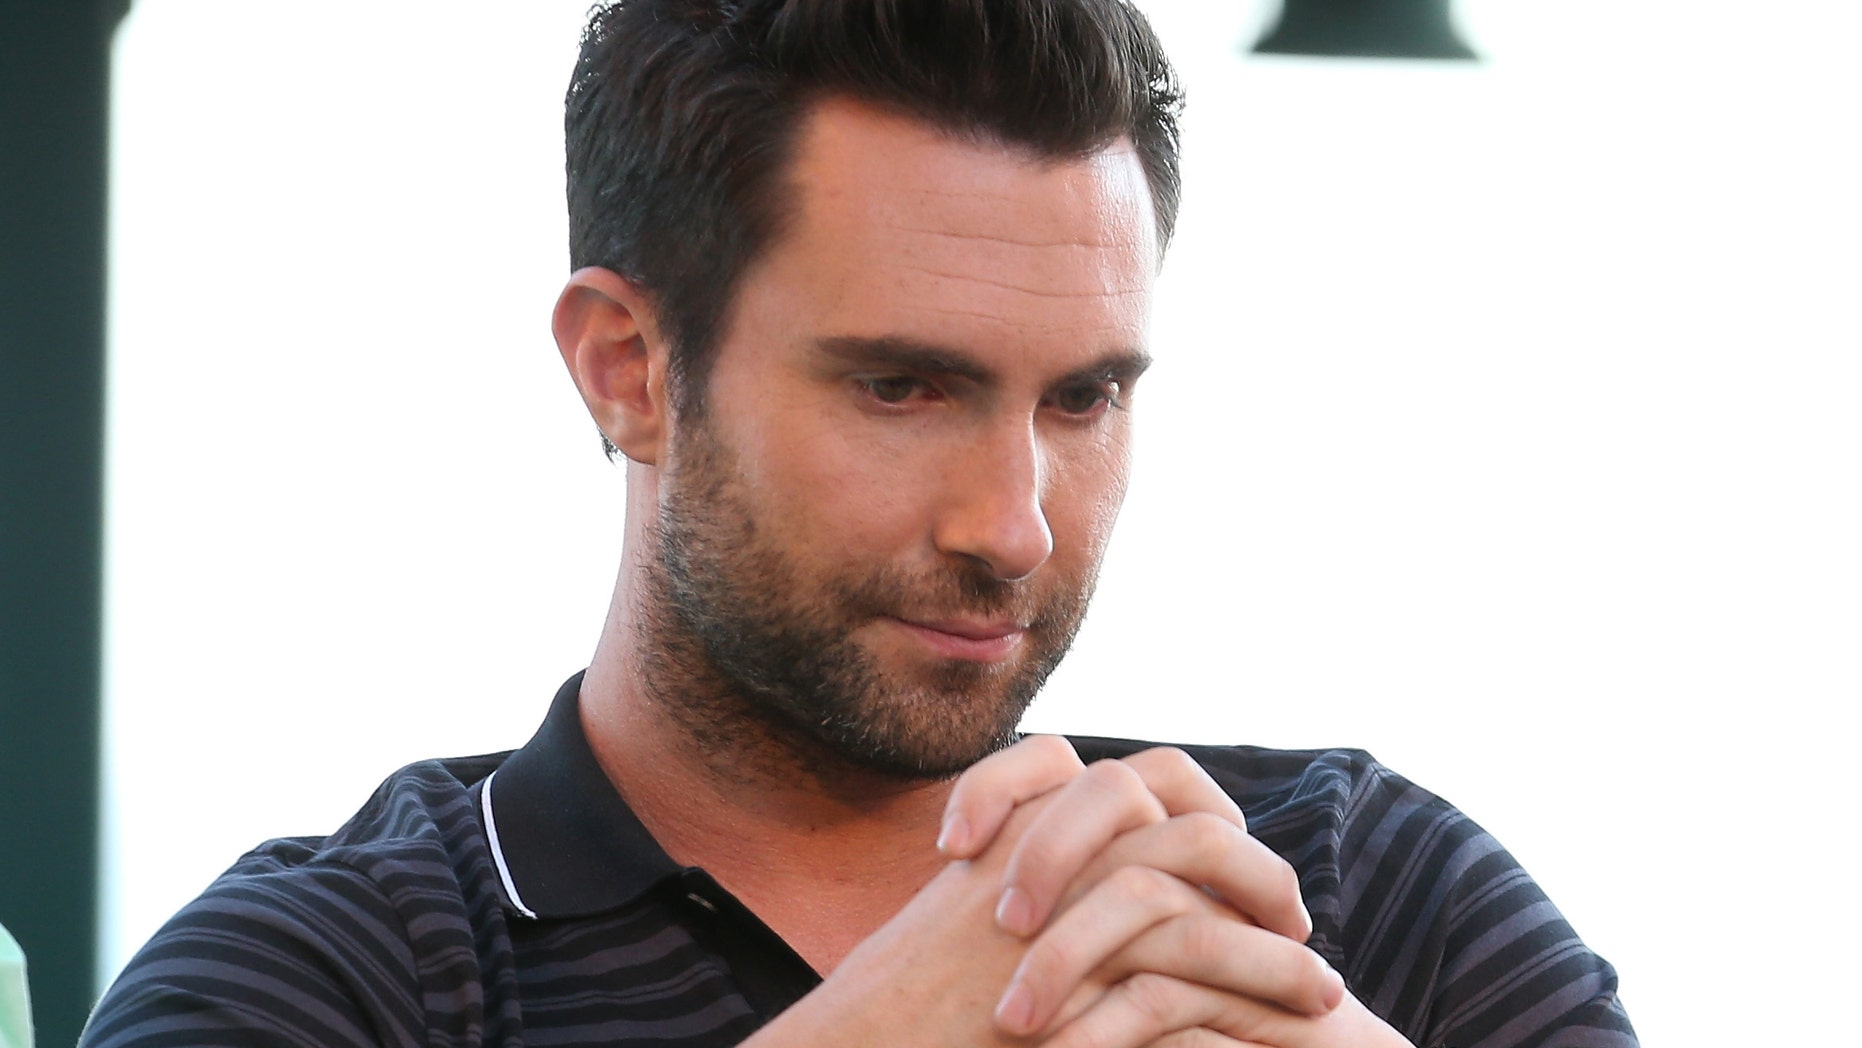 """The Voice's Adam Levine is under fire after his emotional plea to save Reagan Strange during an episode of """"The Voice."""""""